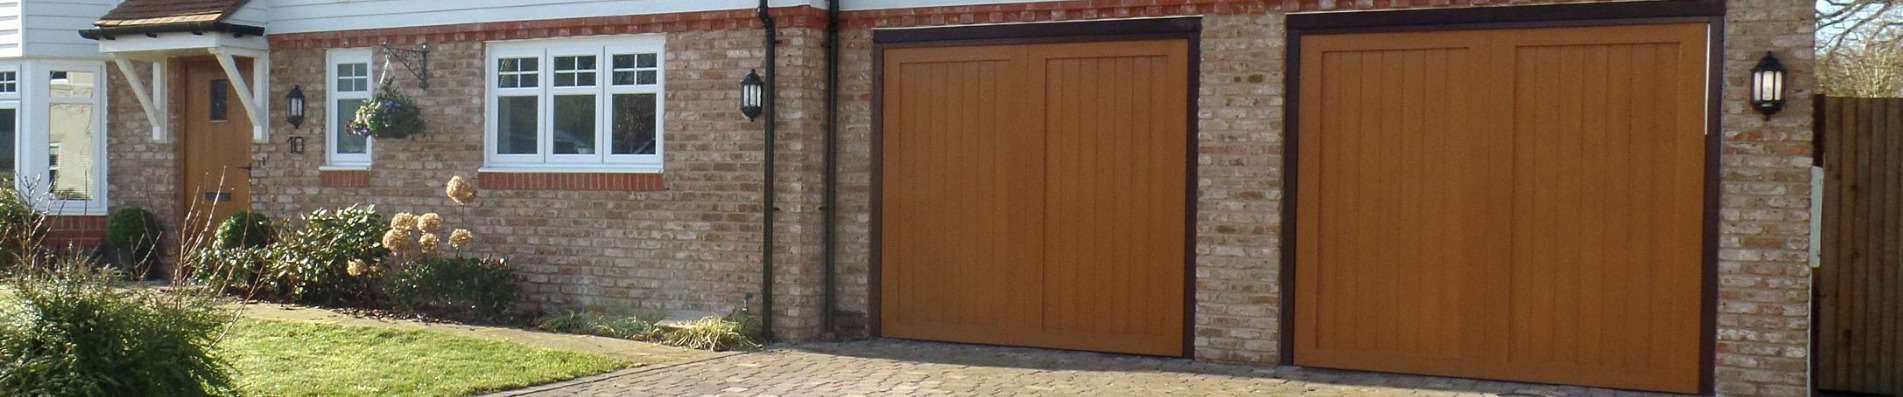 Garage Doors Surrey The Leading Garage Door Company For